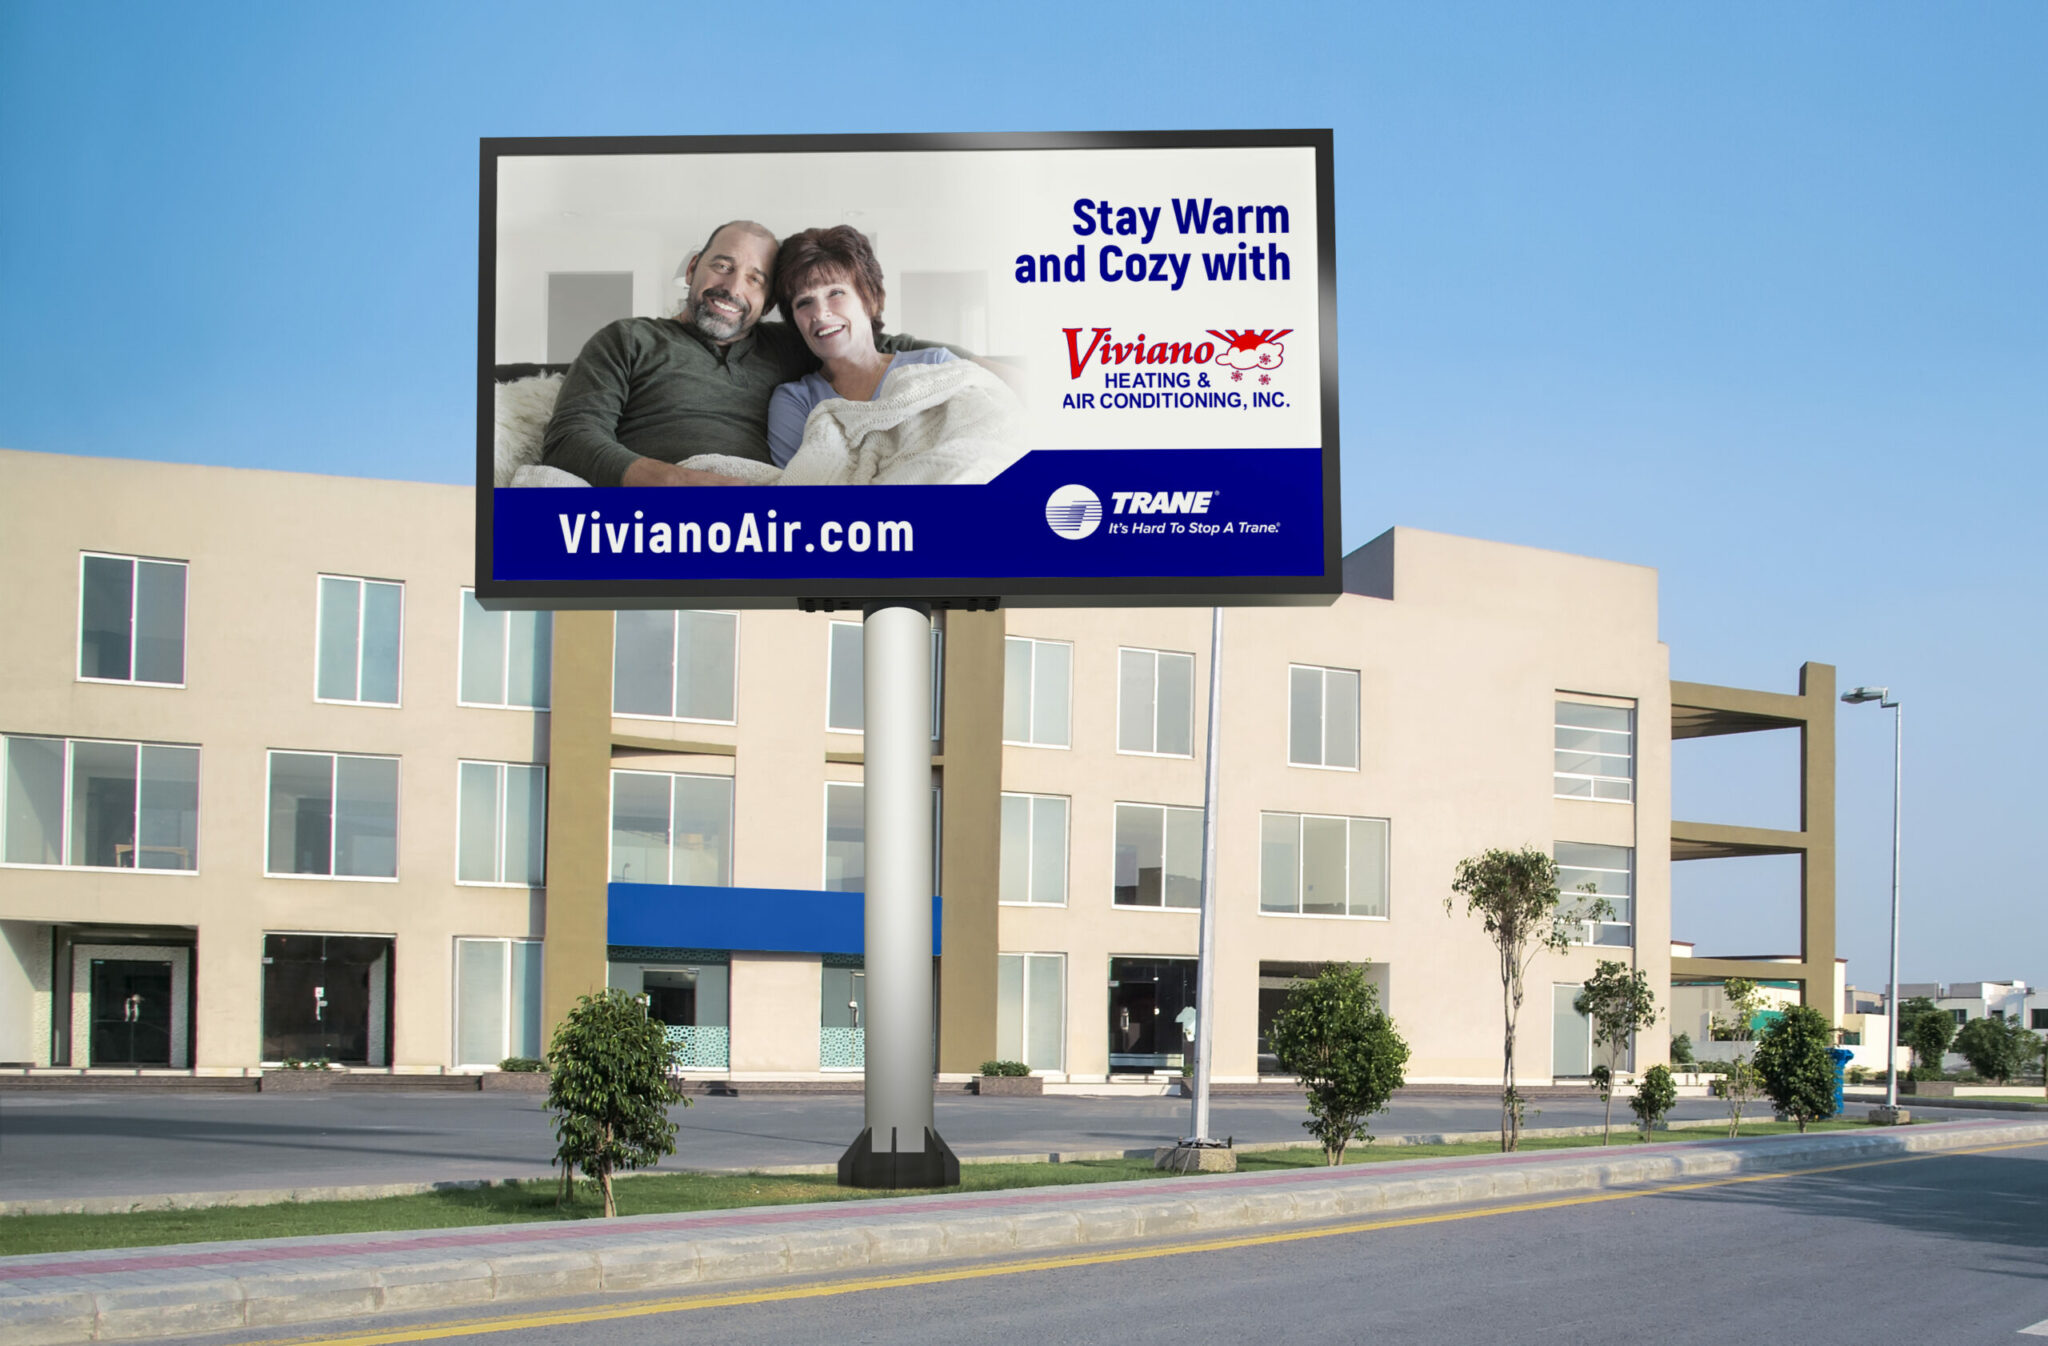 Viviano billboard in front of a corporate building